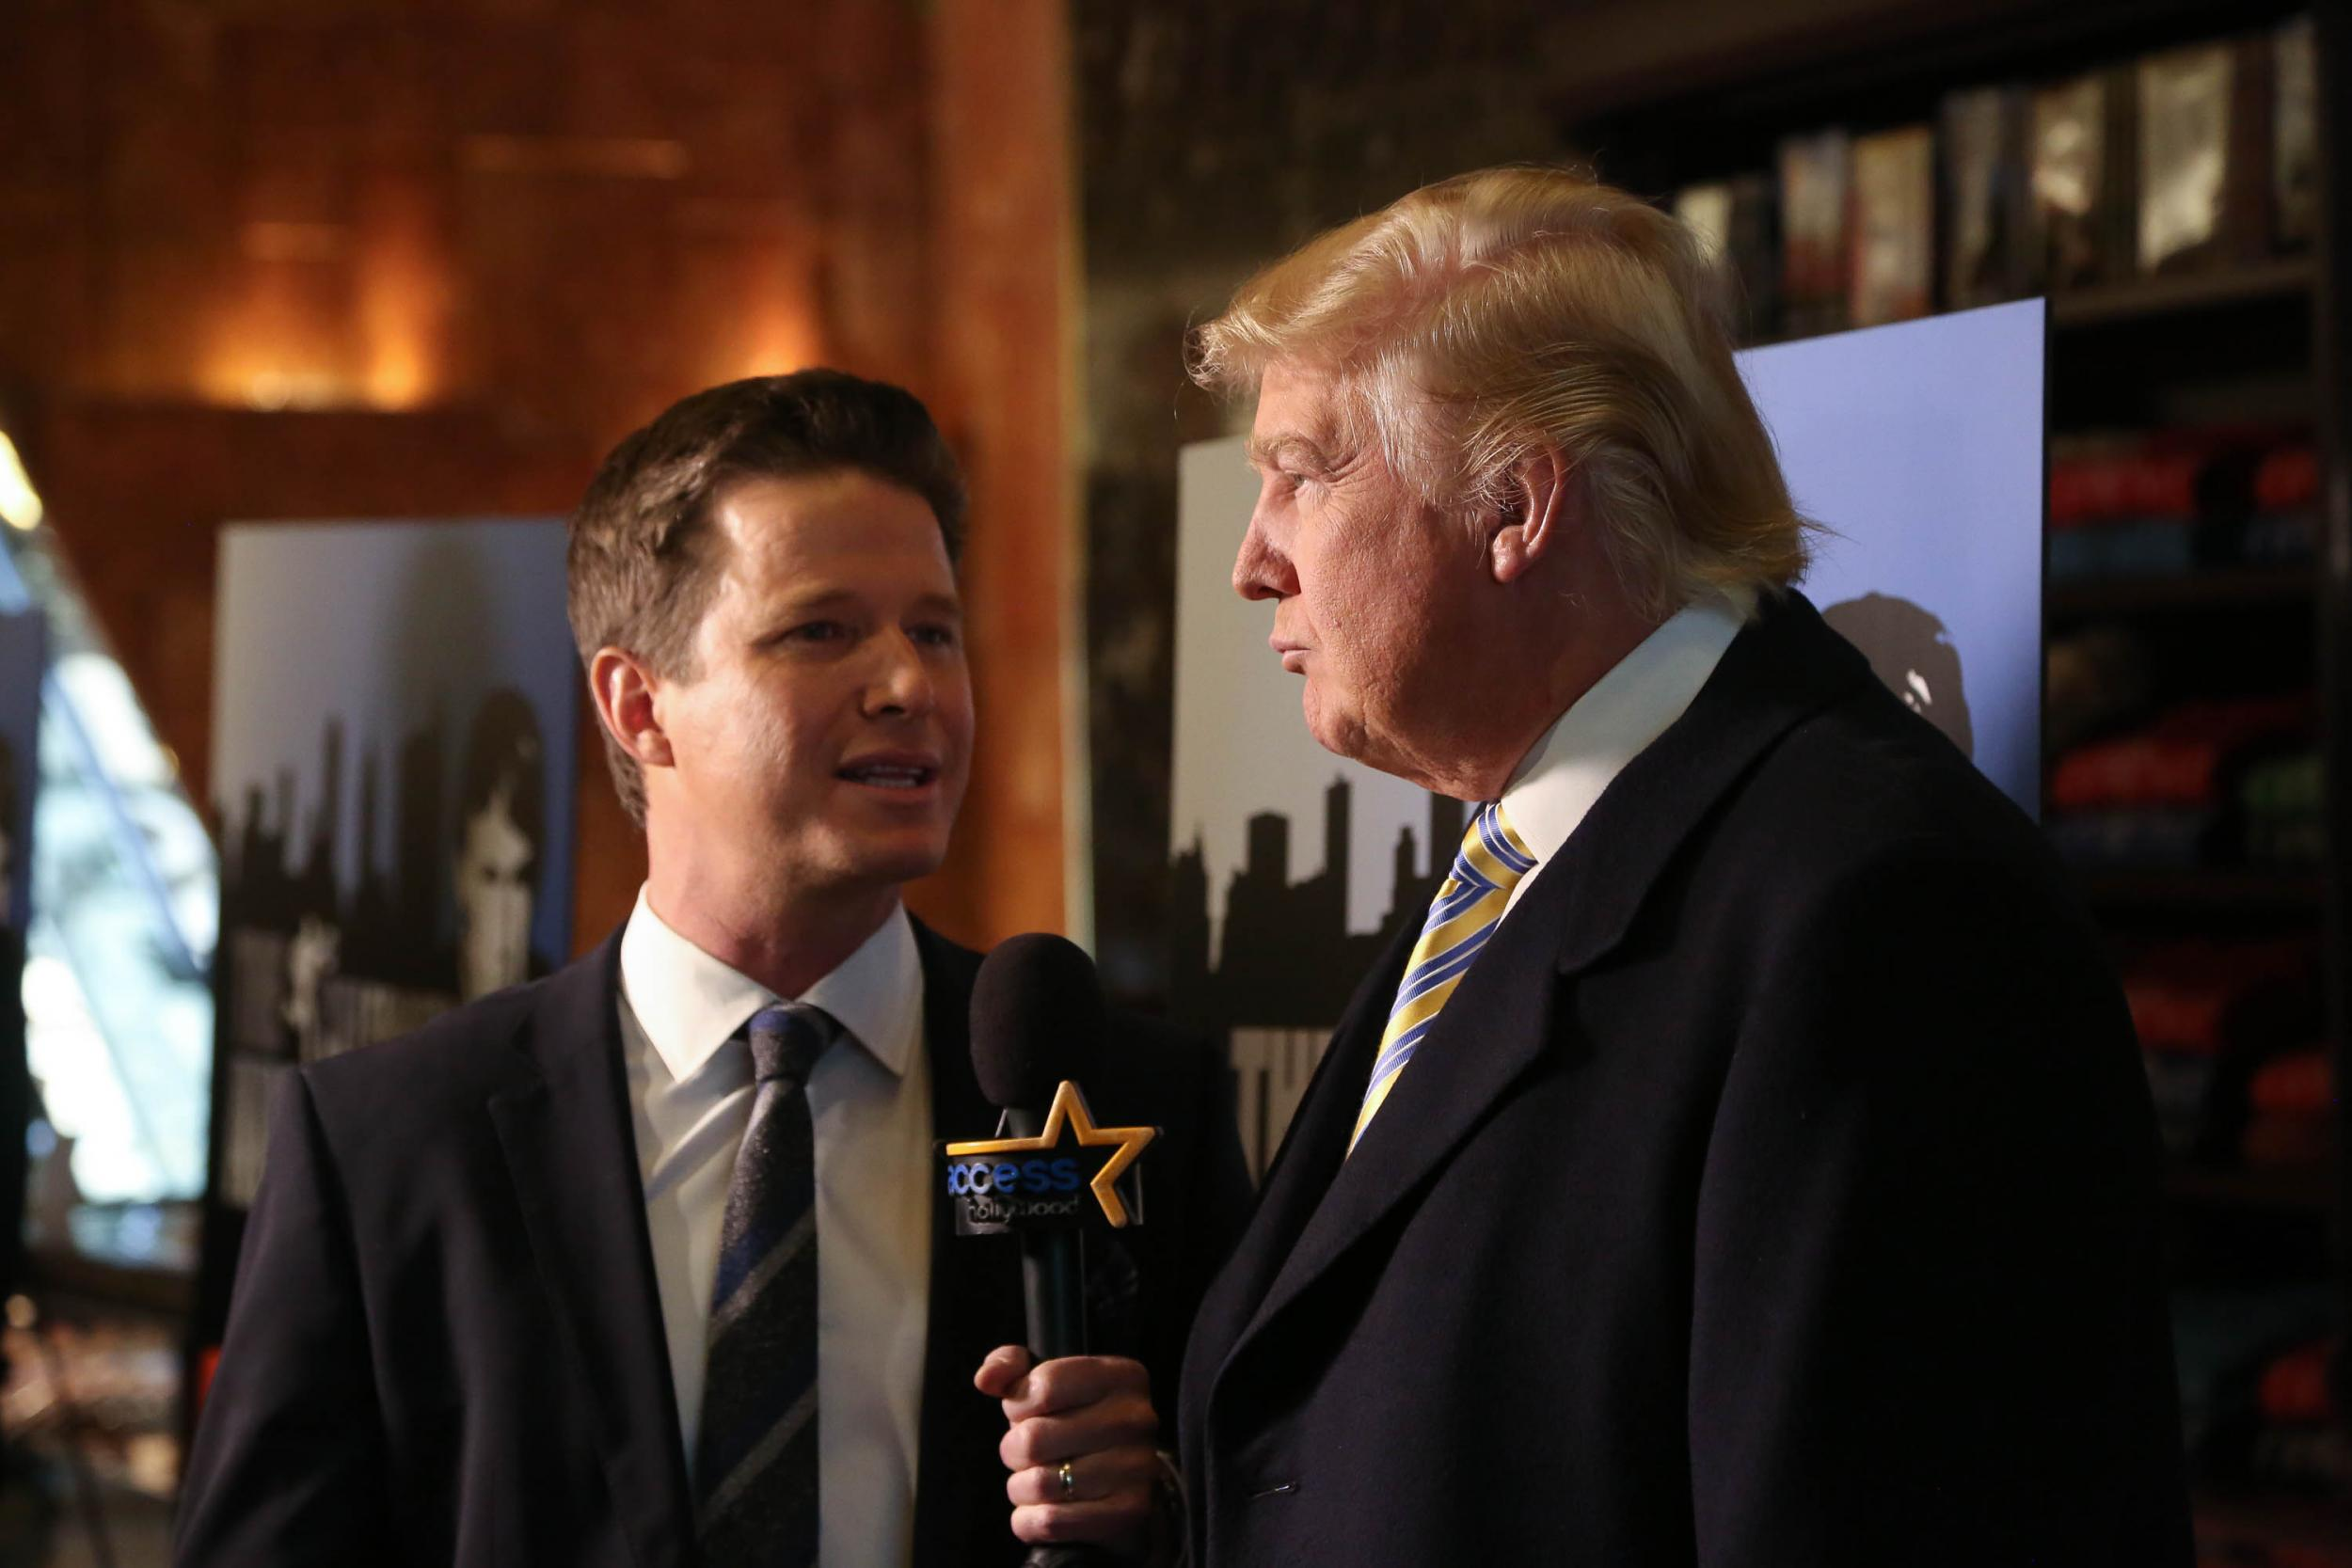 Billy Bush says he considered suicide after Trump 'grab them by the p***y' tape was leaked